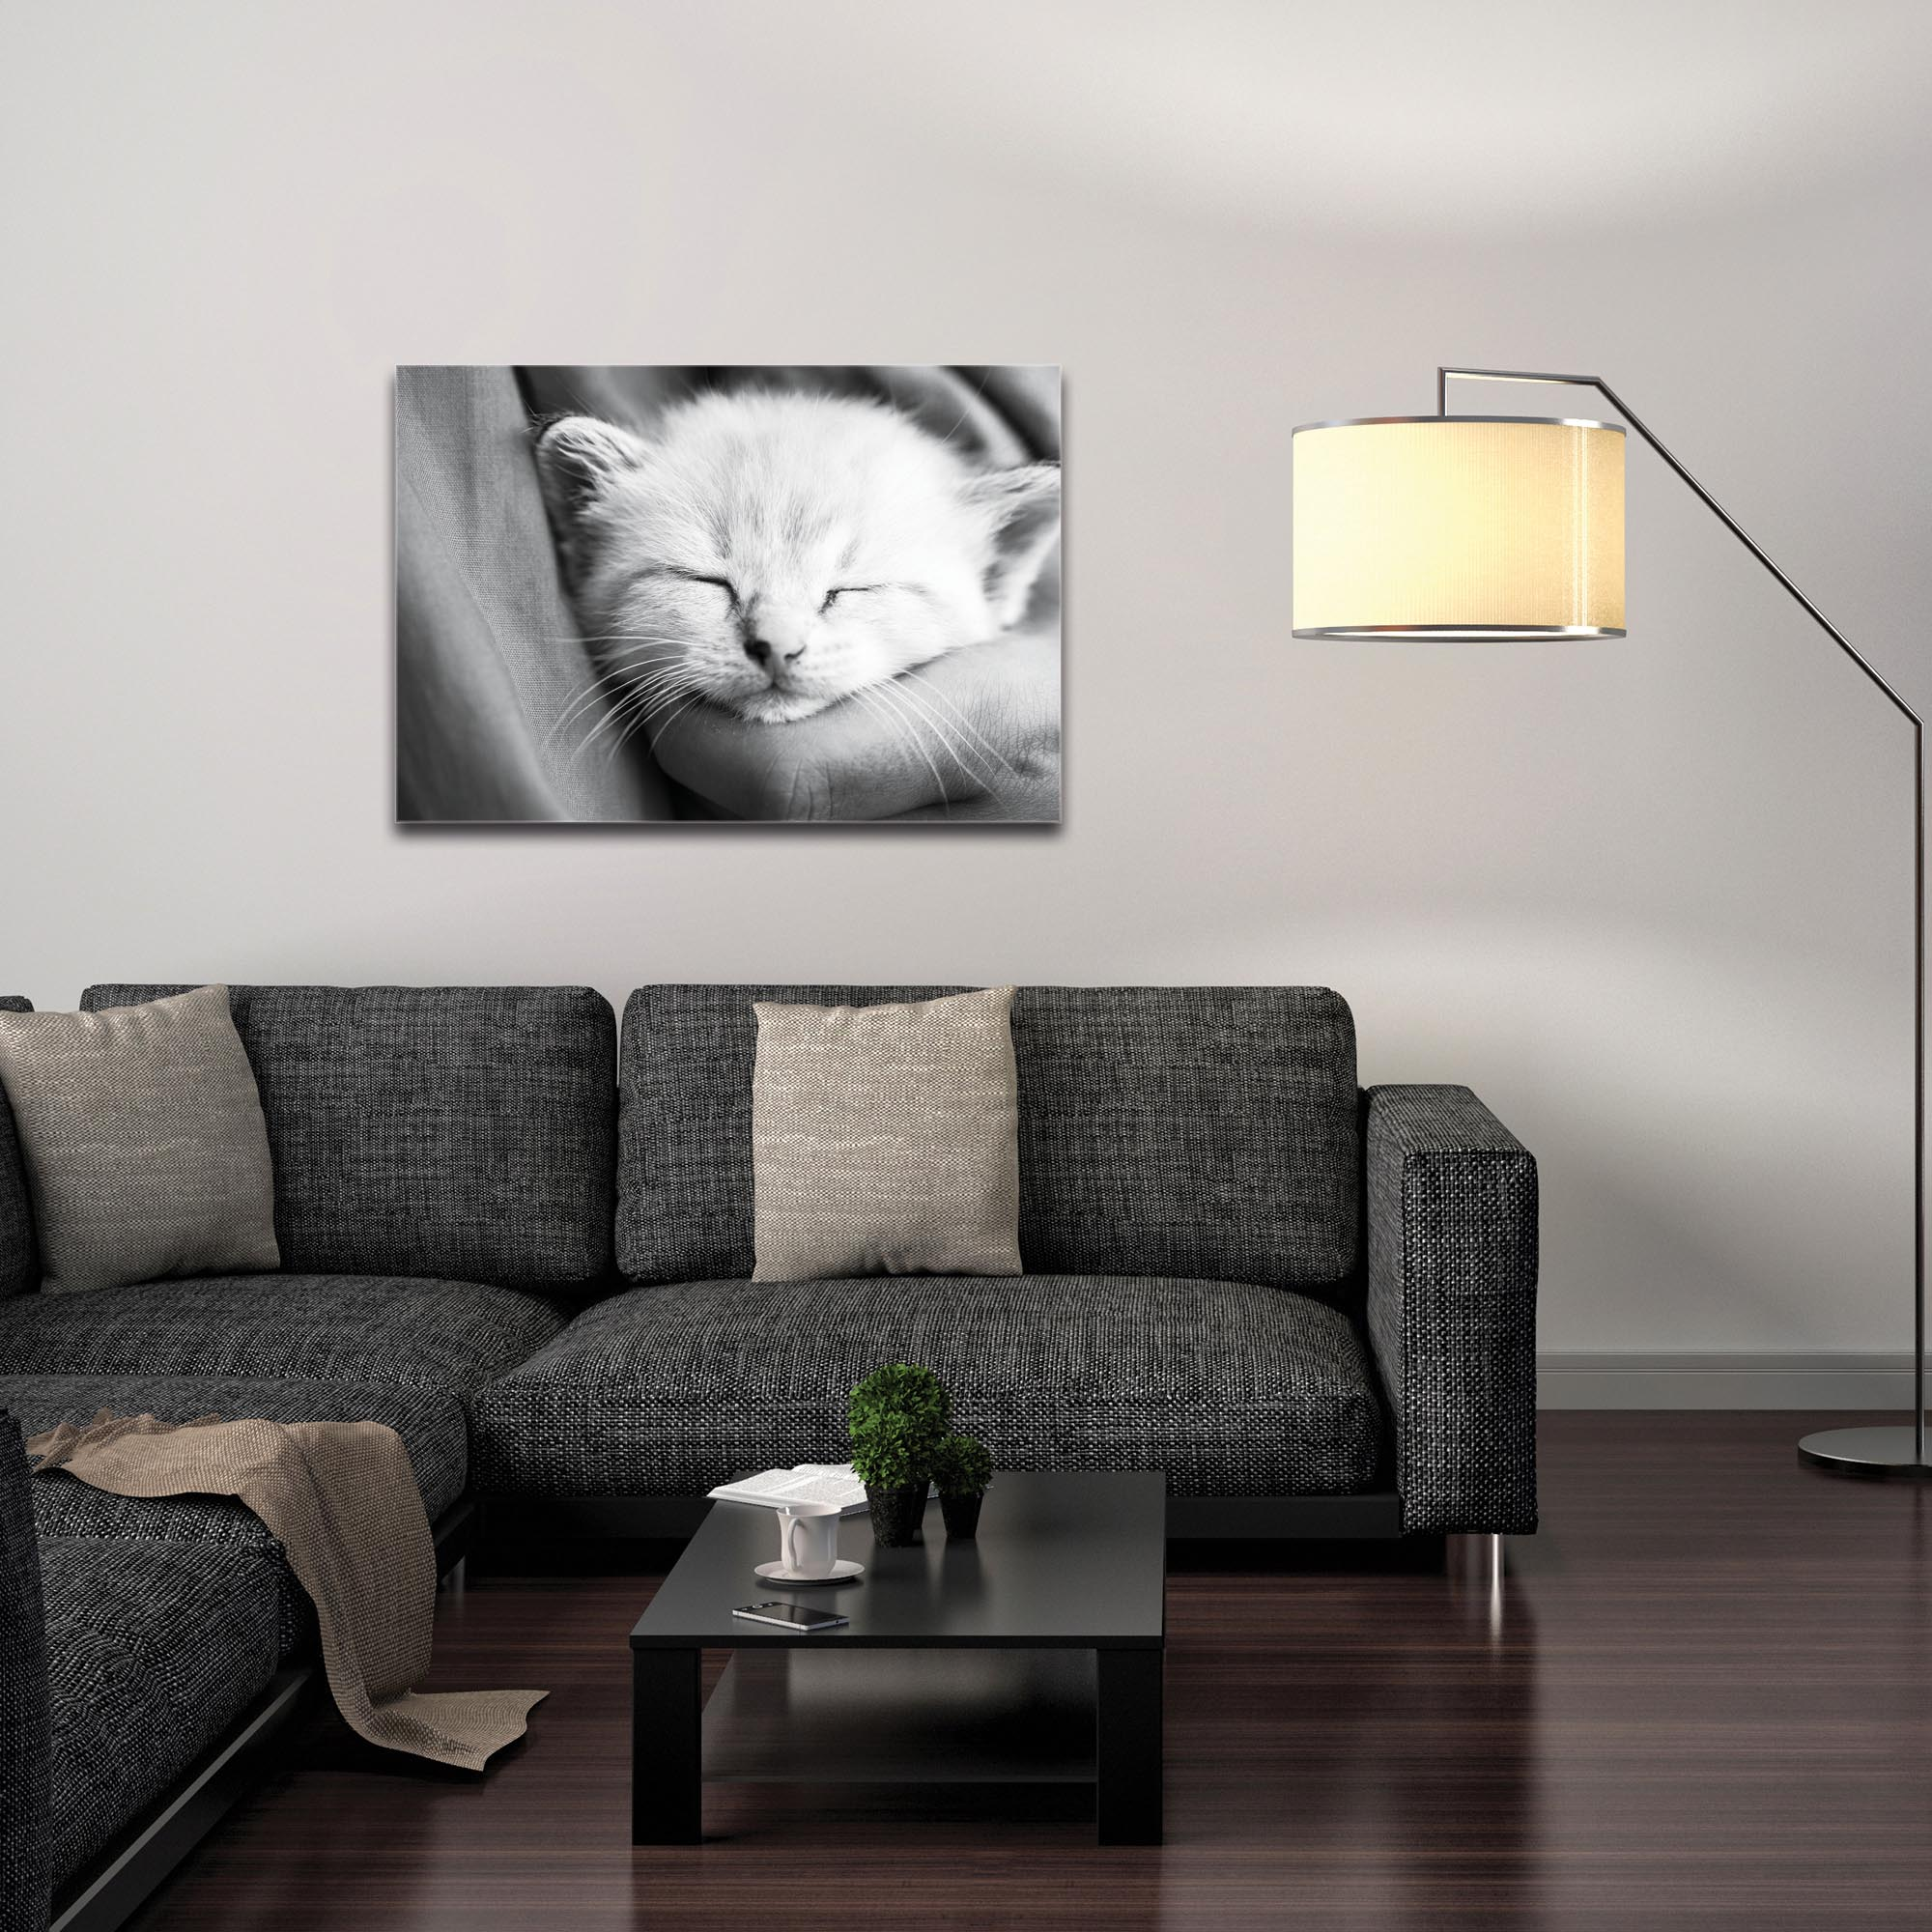 Casual Wall Art 'Kitten Dreams' - Wildlife Decor on Metal or Plexiglass - Image 3